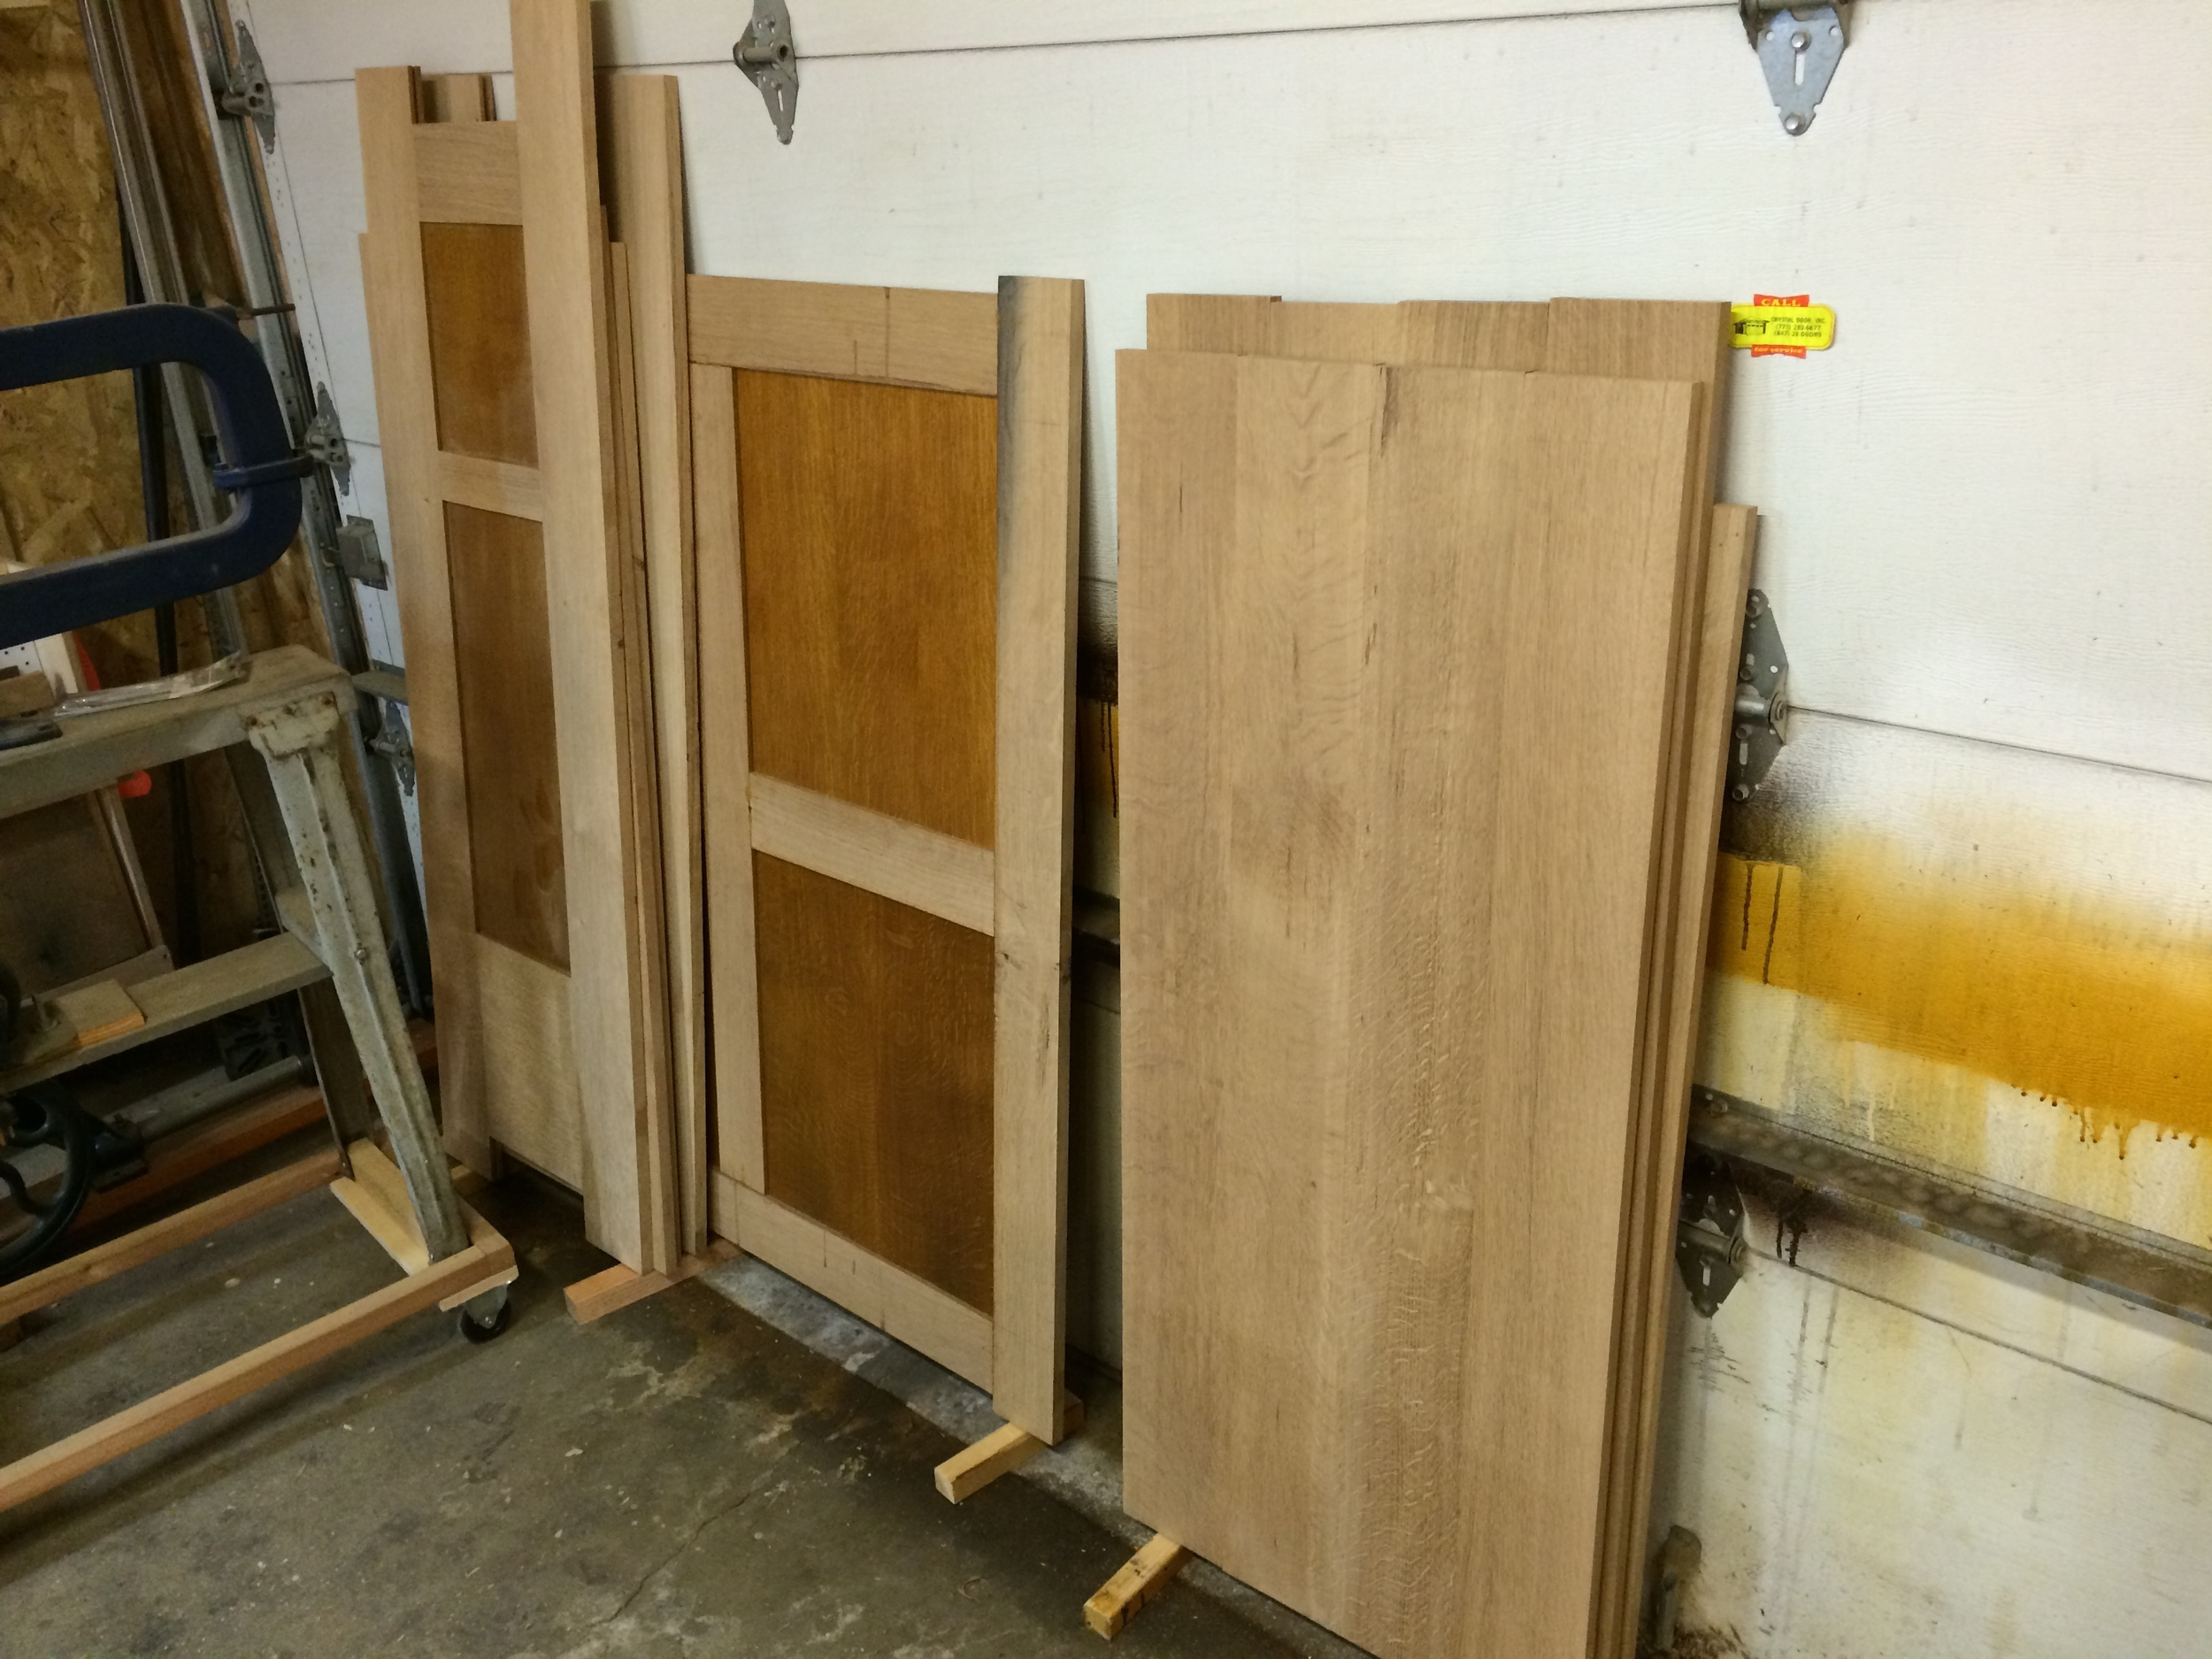 wardrobe pieces (doors, sides, back, top, bottom, and inner divider)taking up shop space -I ended up stumbling over them and moving them back and forth,working around them,for the next several months.